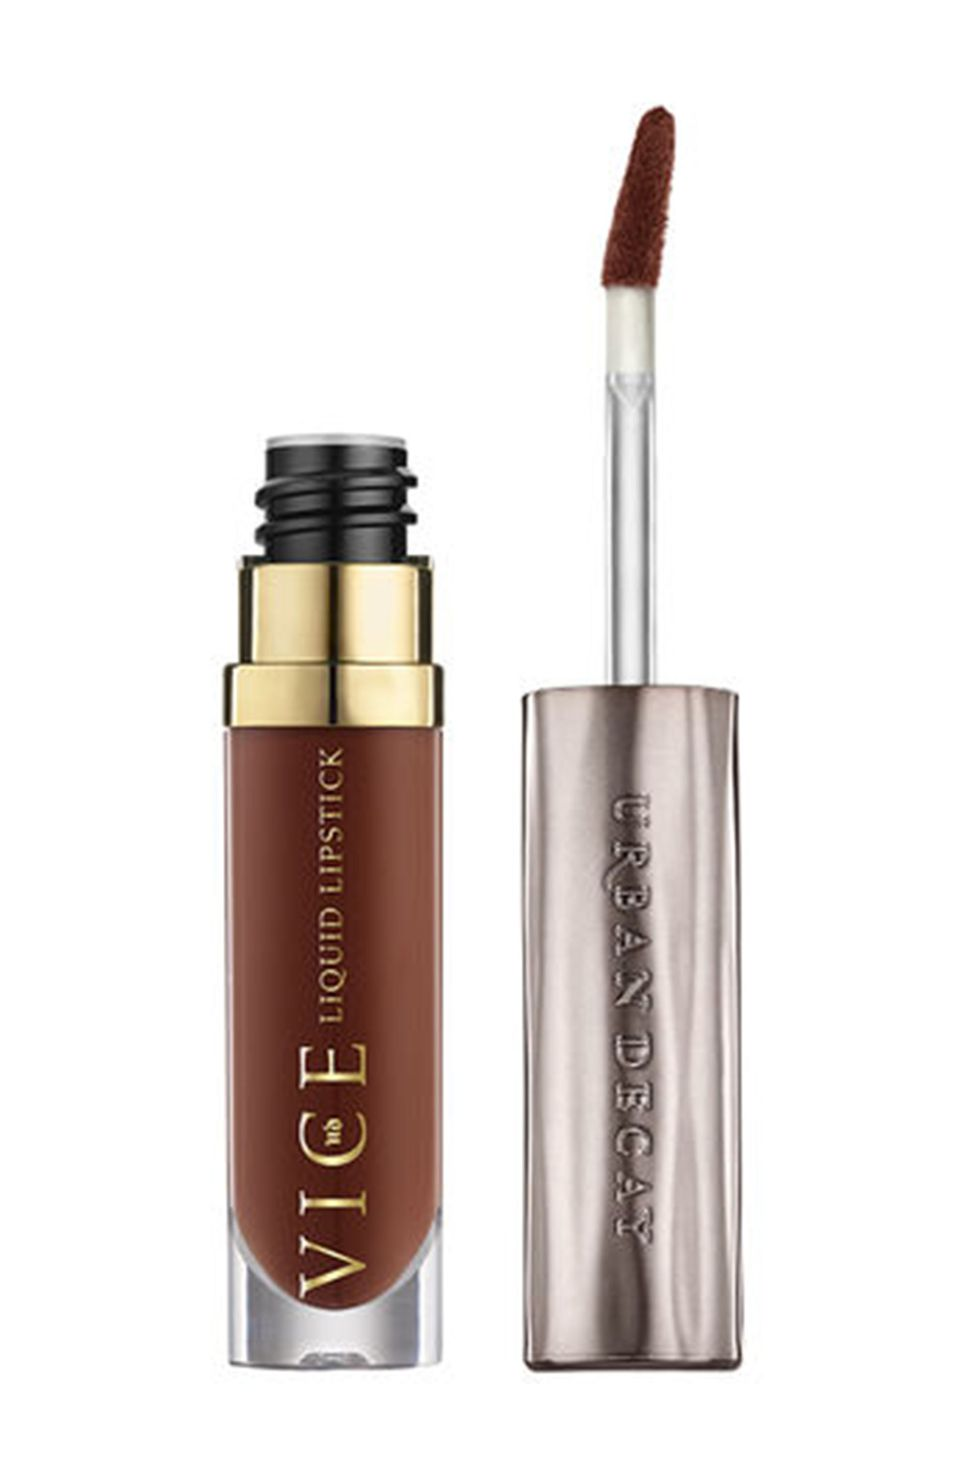 elle-beauty-matte-lipstick-0010-chloemattelipsticks1993-1520005427